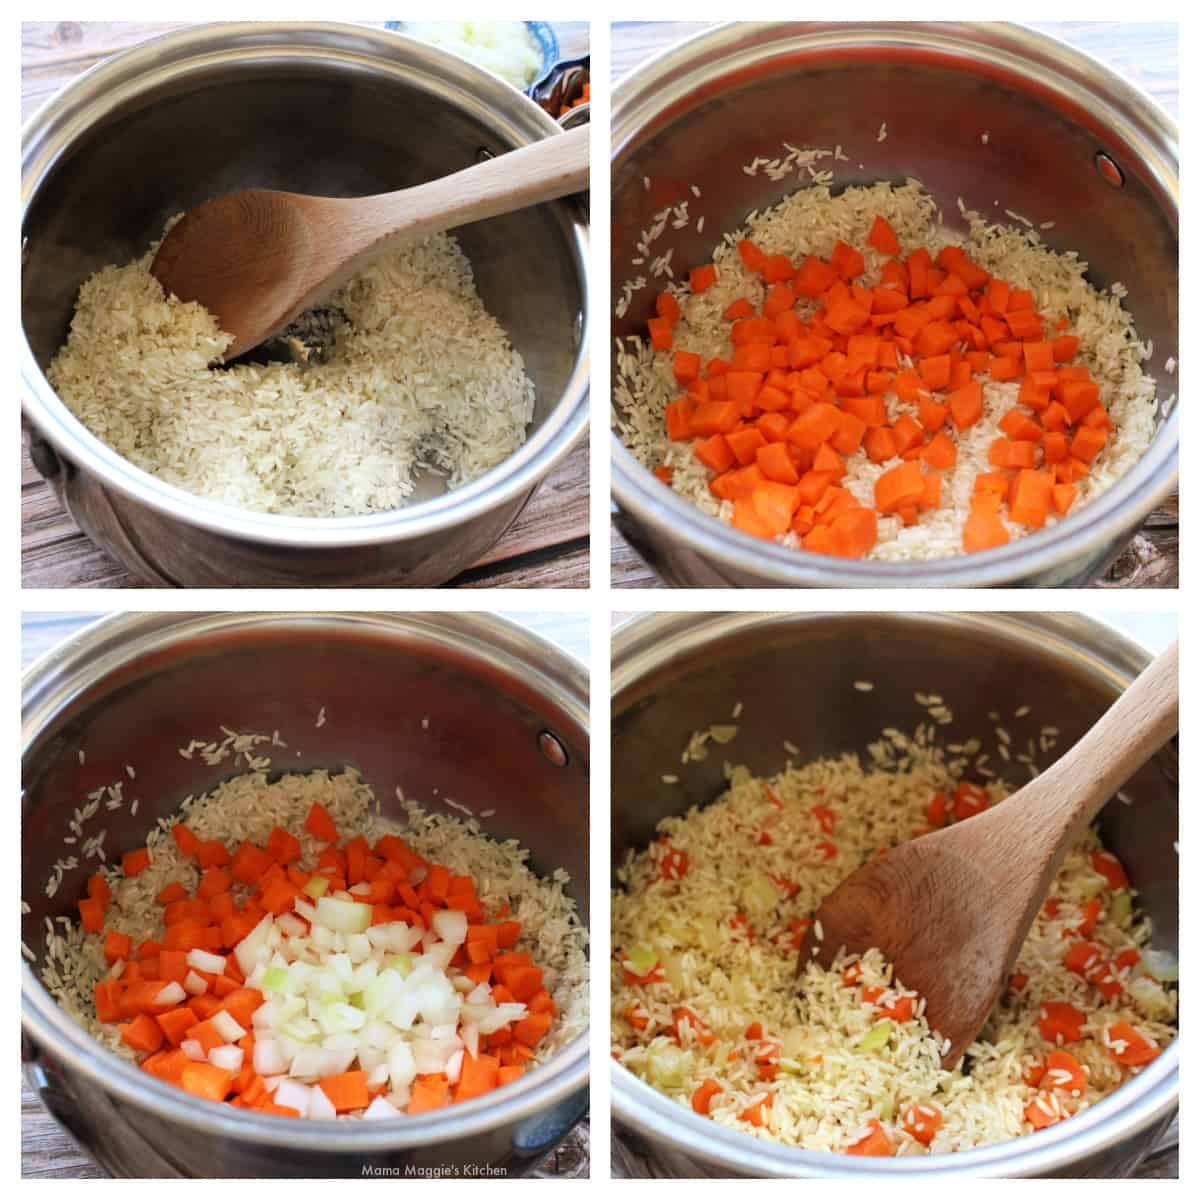 A collage showing rice, carrots, and onion cooking in a pot.